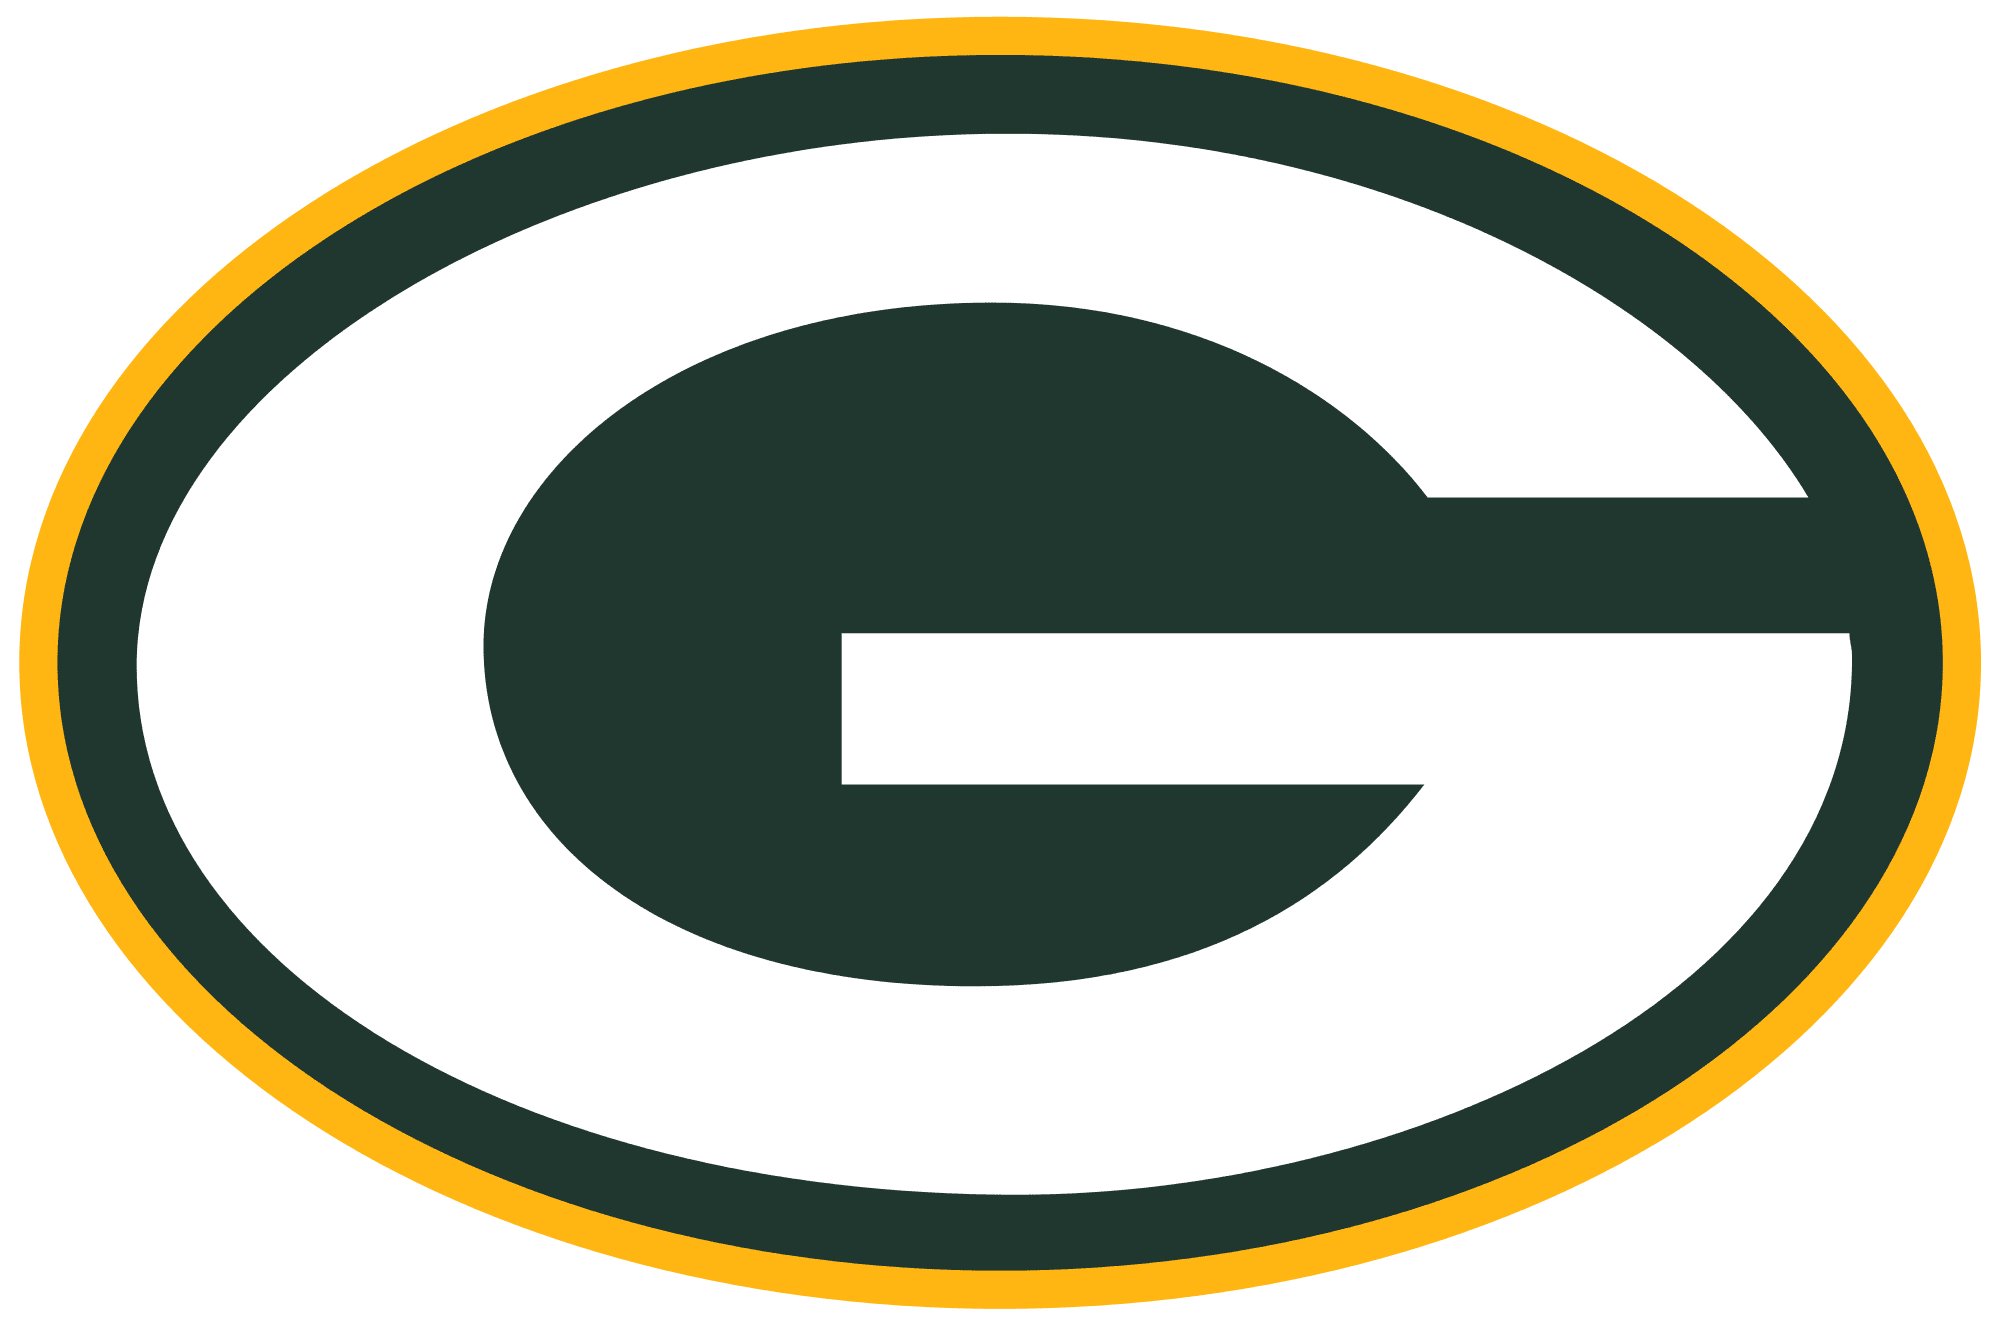 Green Bay Packers Logo And Symbol Meaning History Png